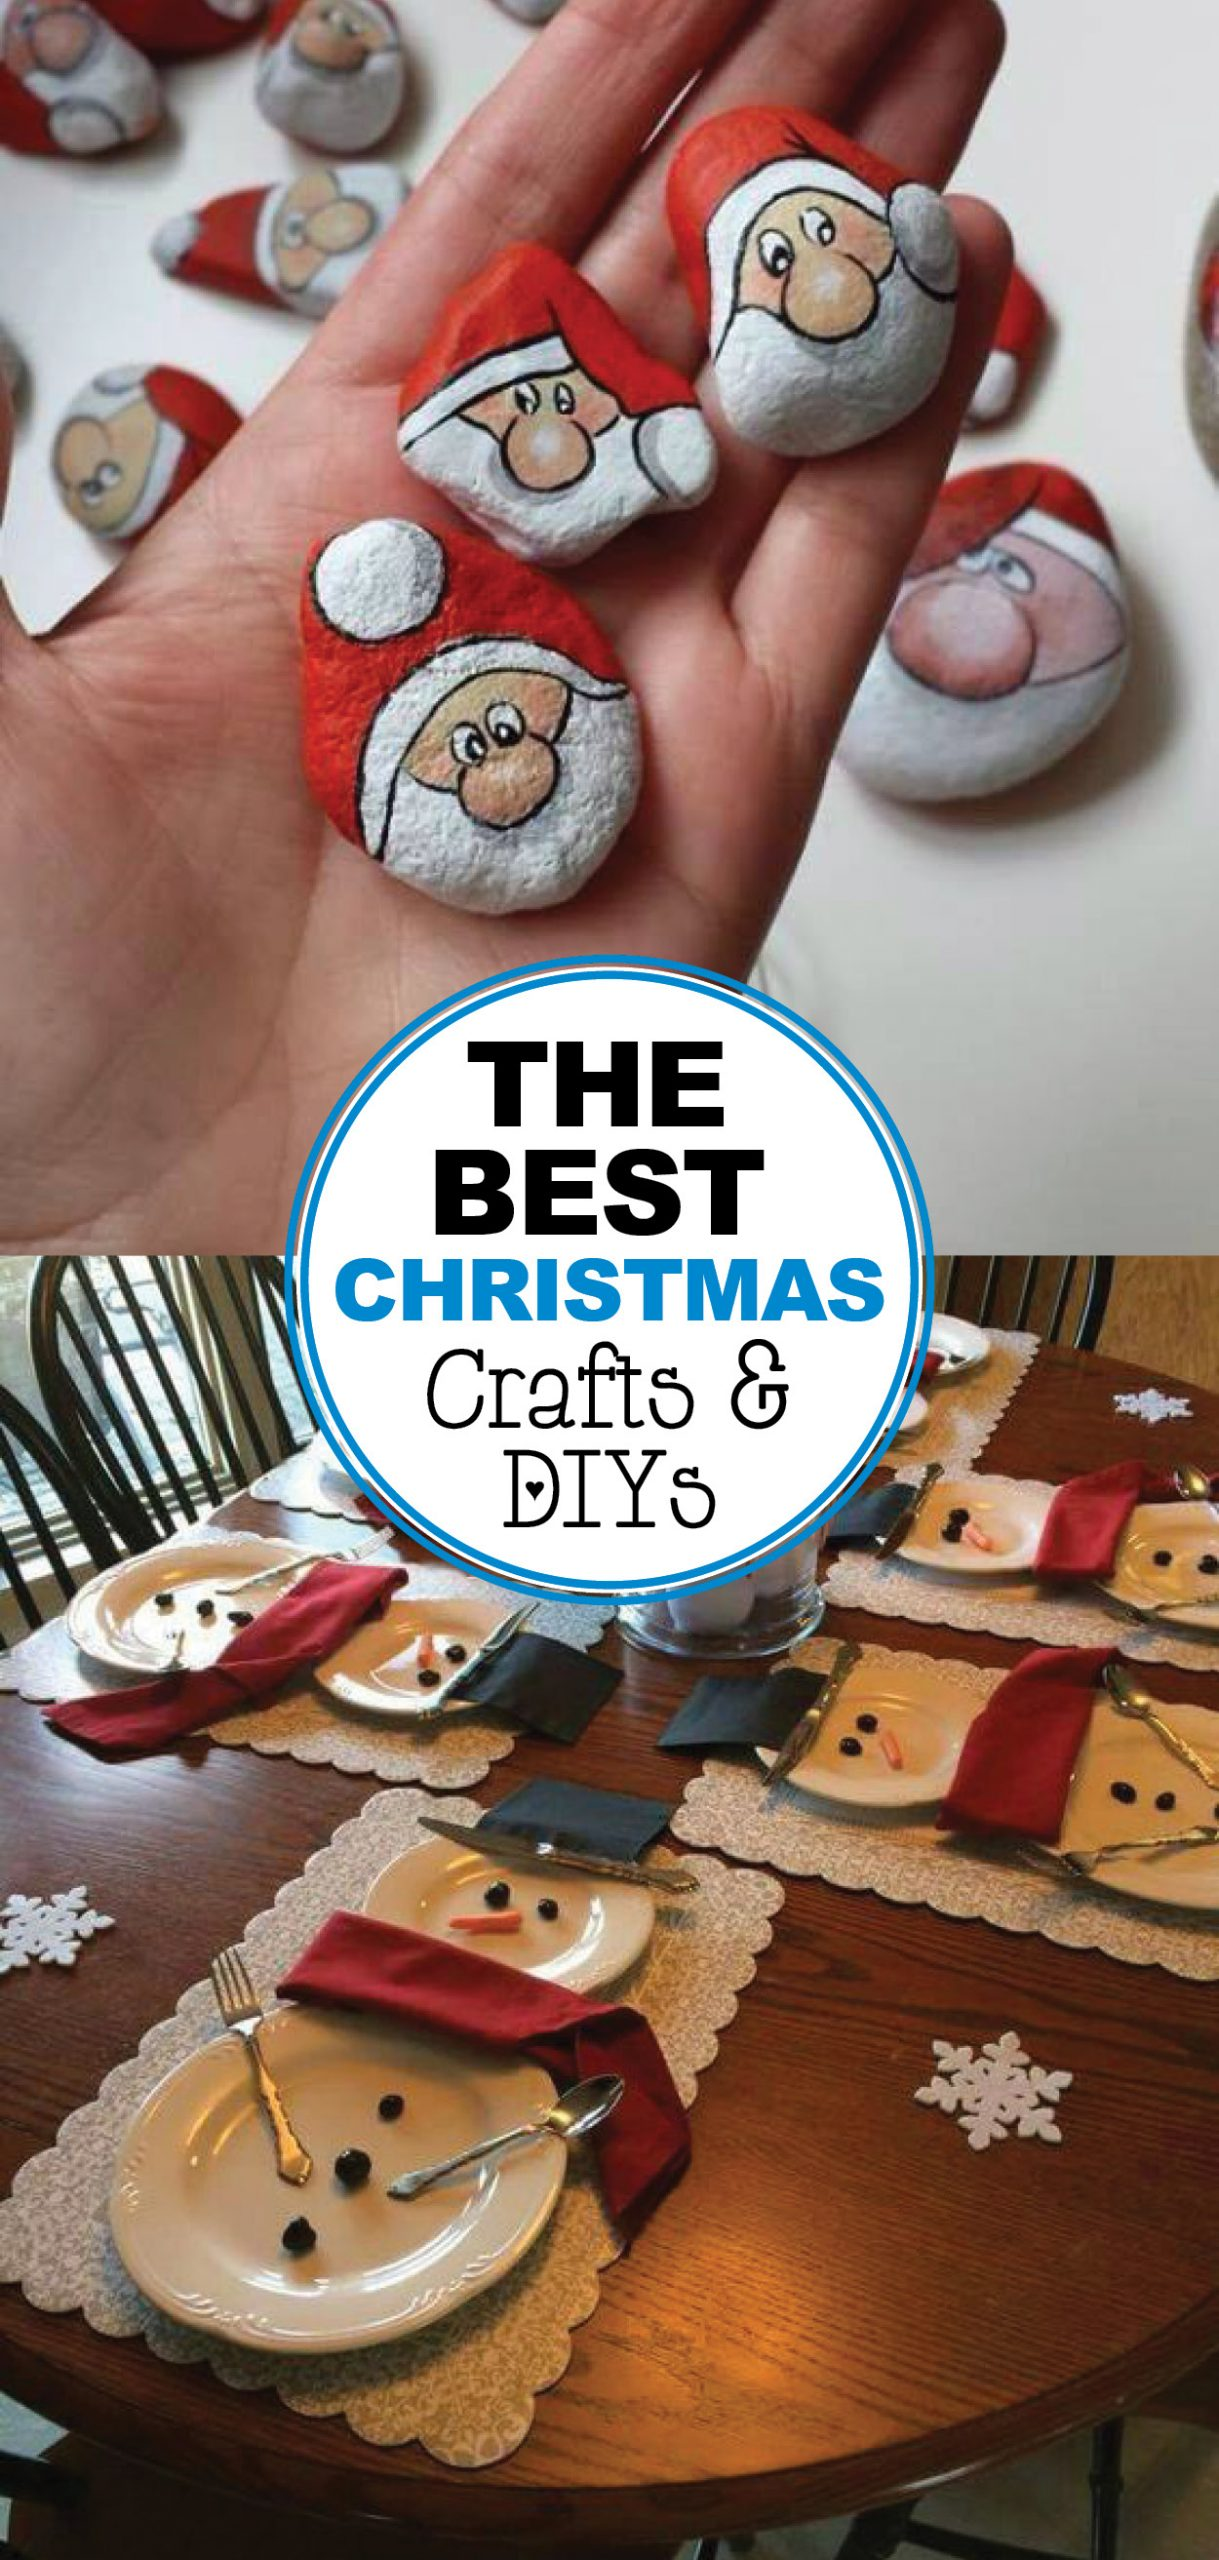 The Best Christmas Crafts and DIYs